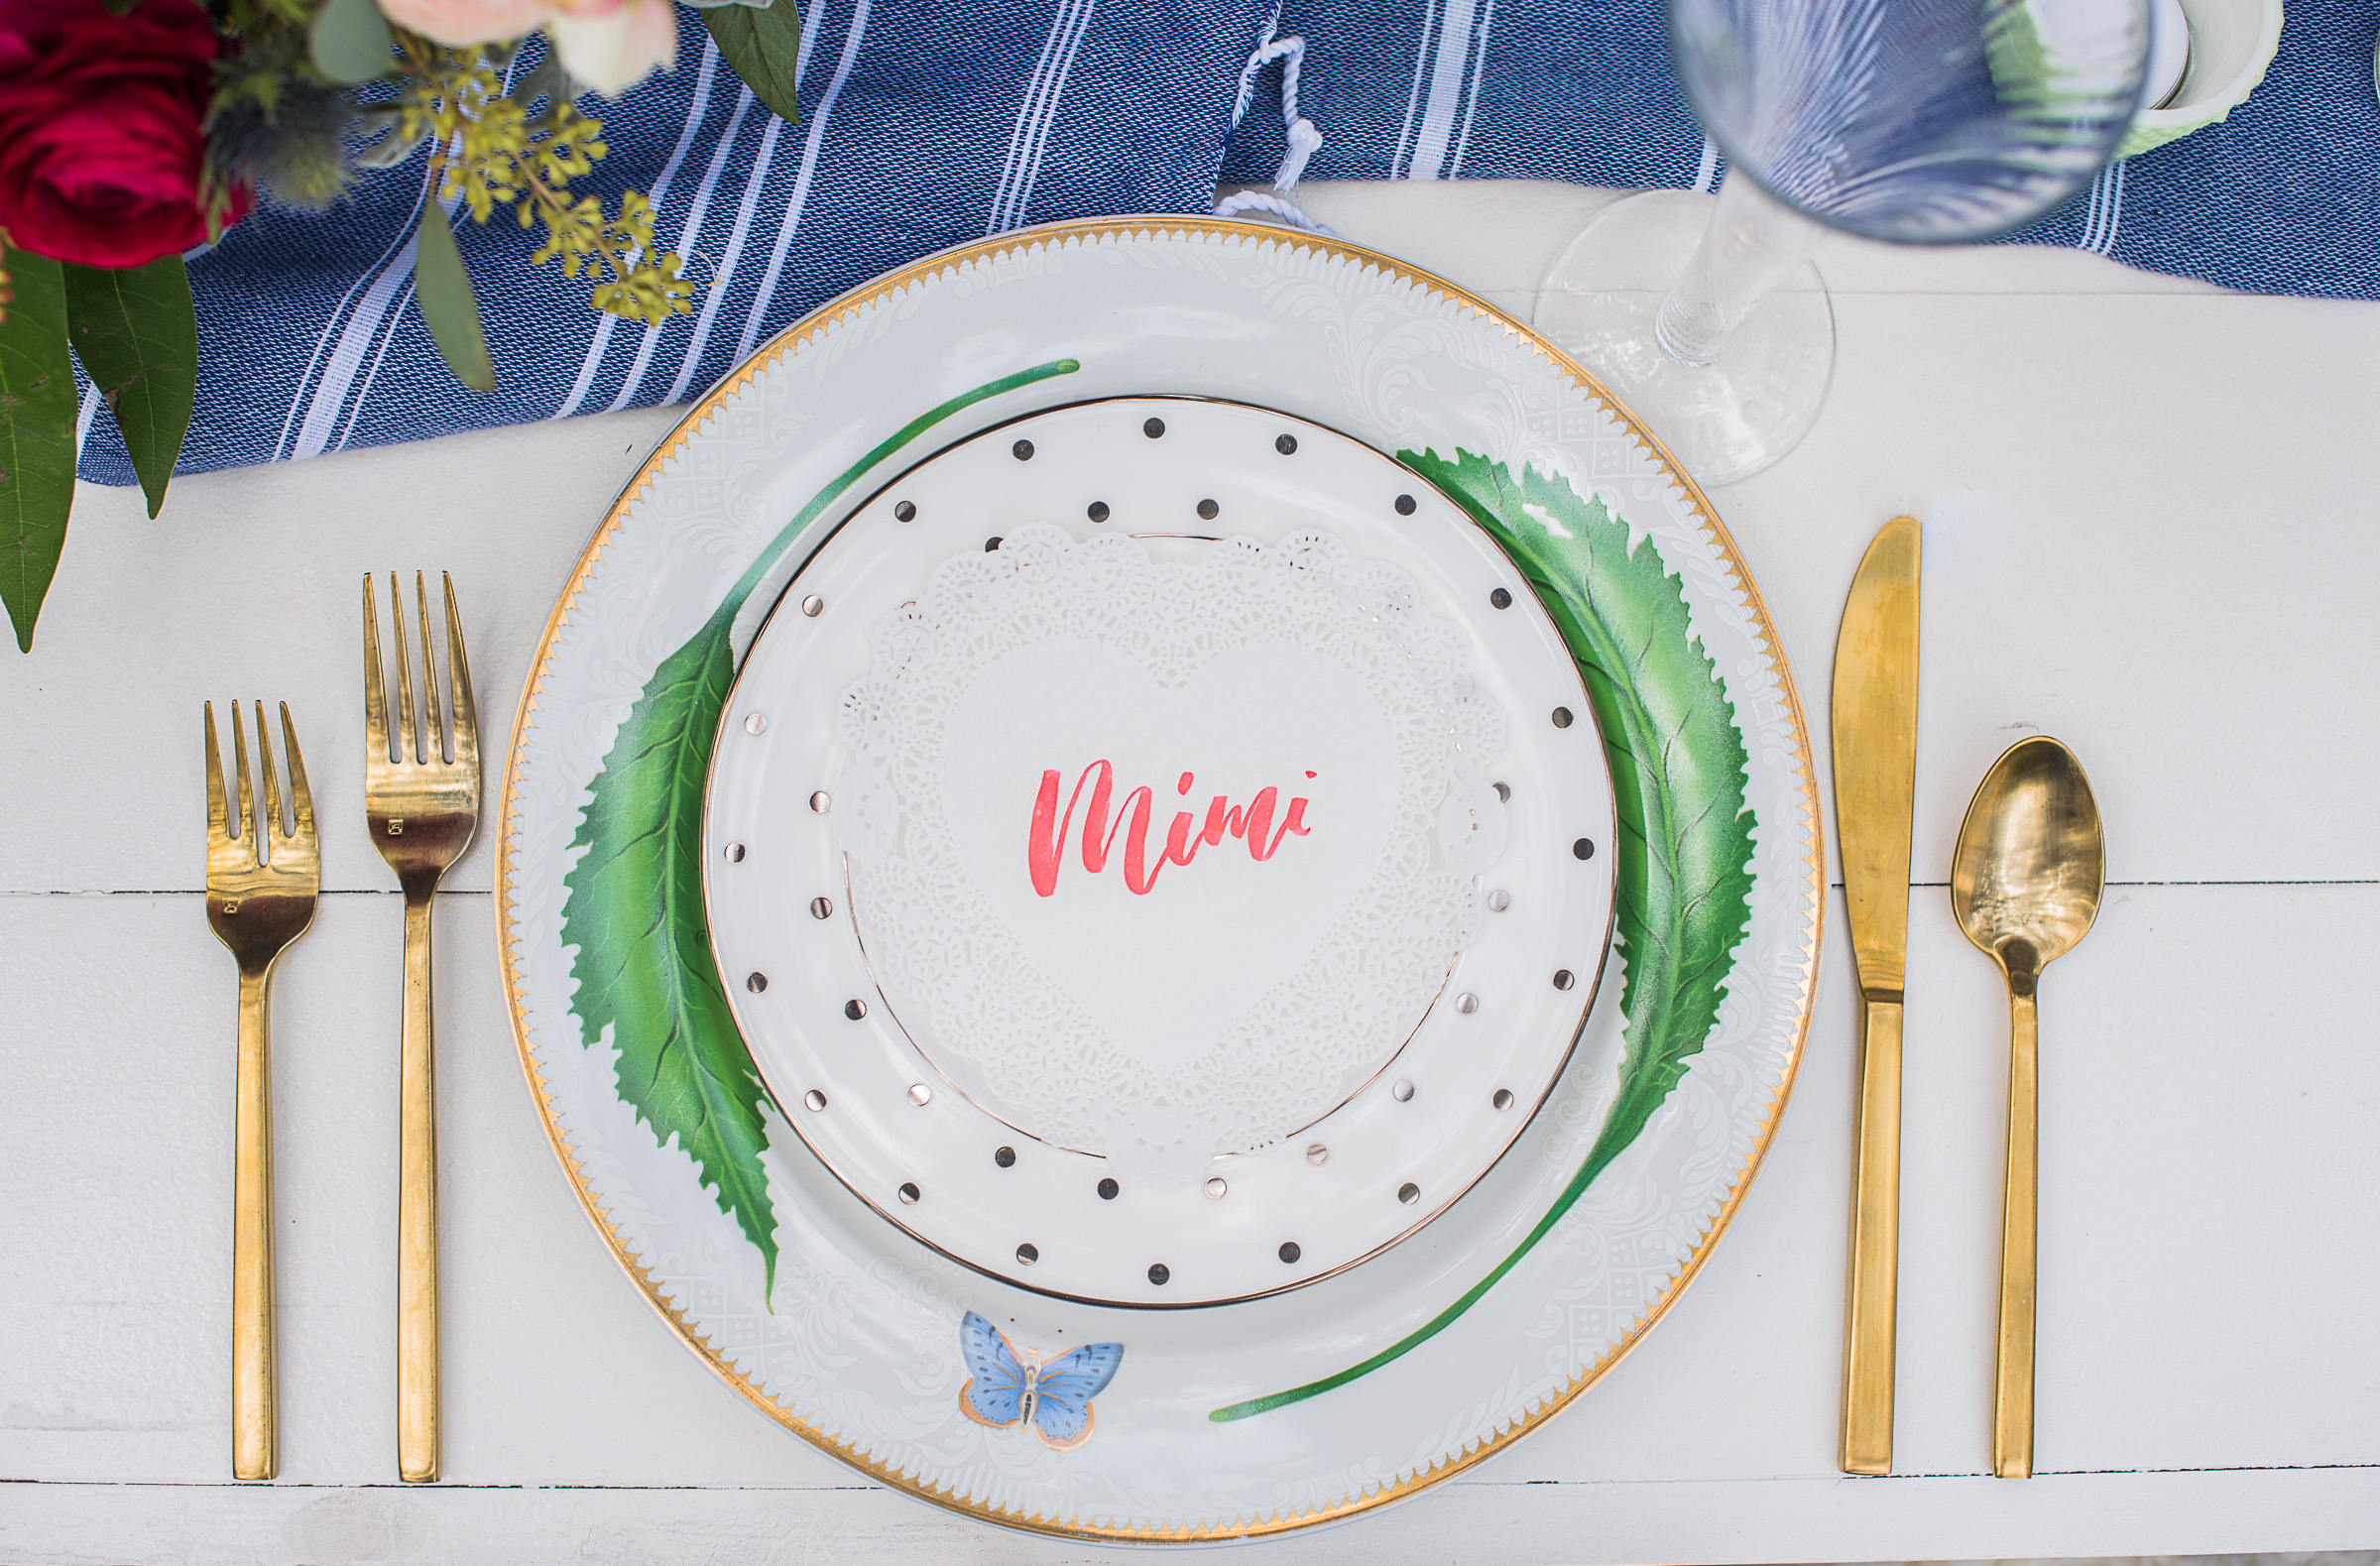 LOVED this gorgeous hand lettered place setting by The Town Serif!